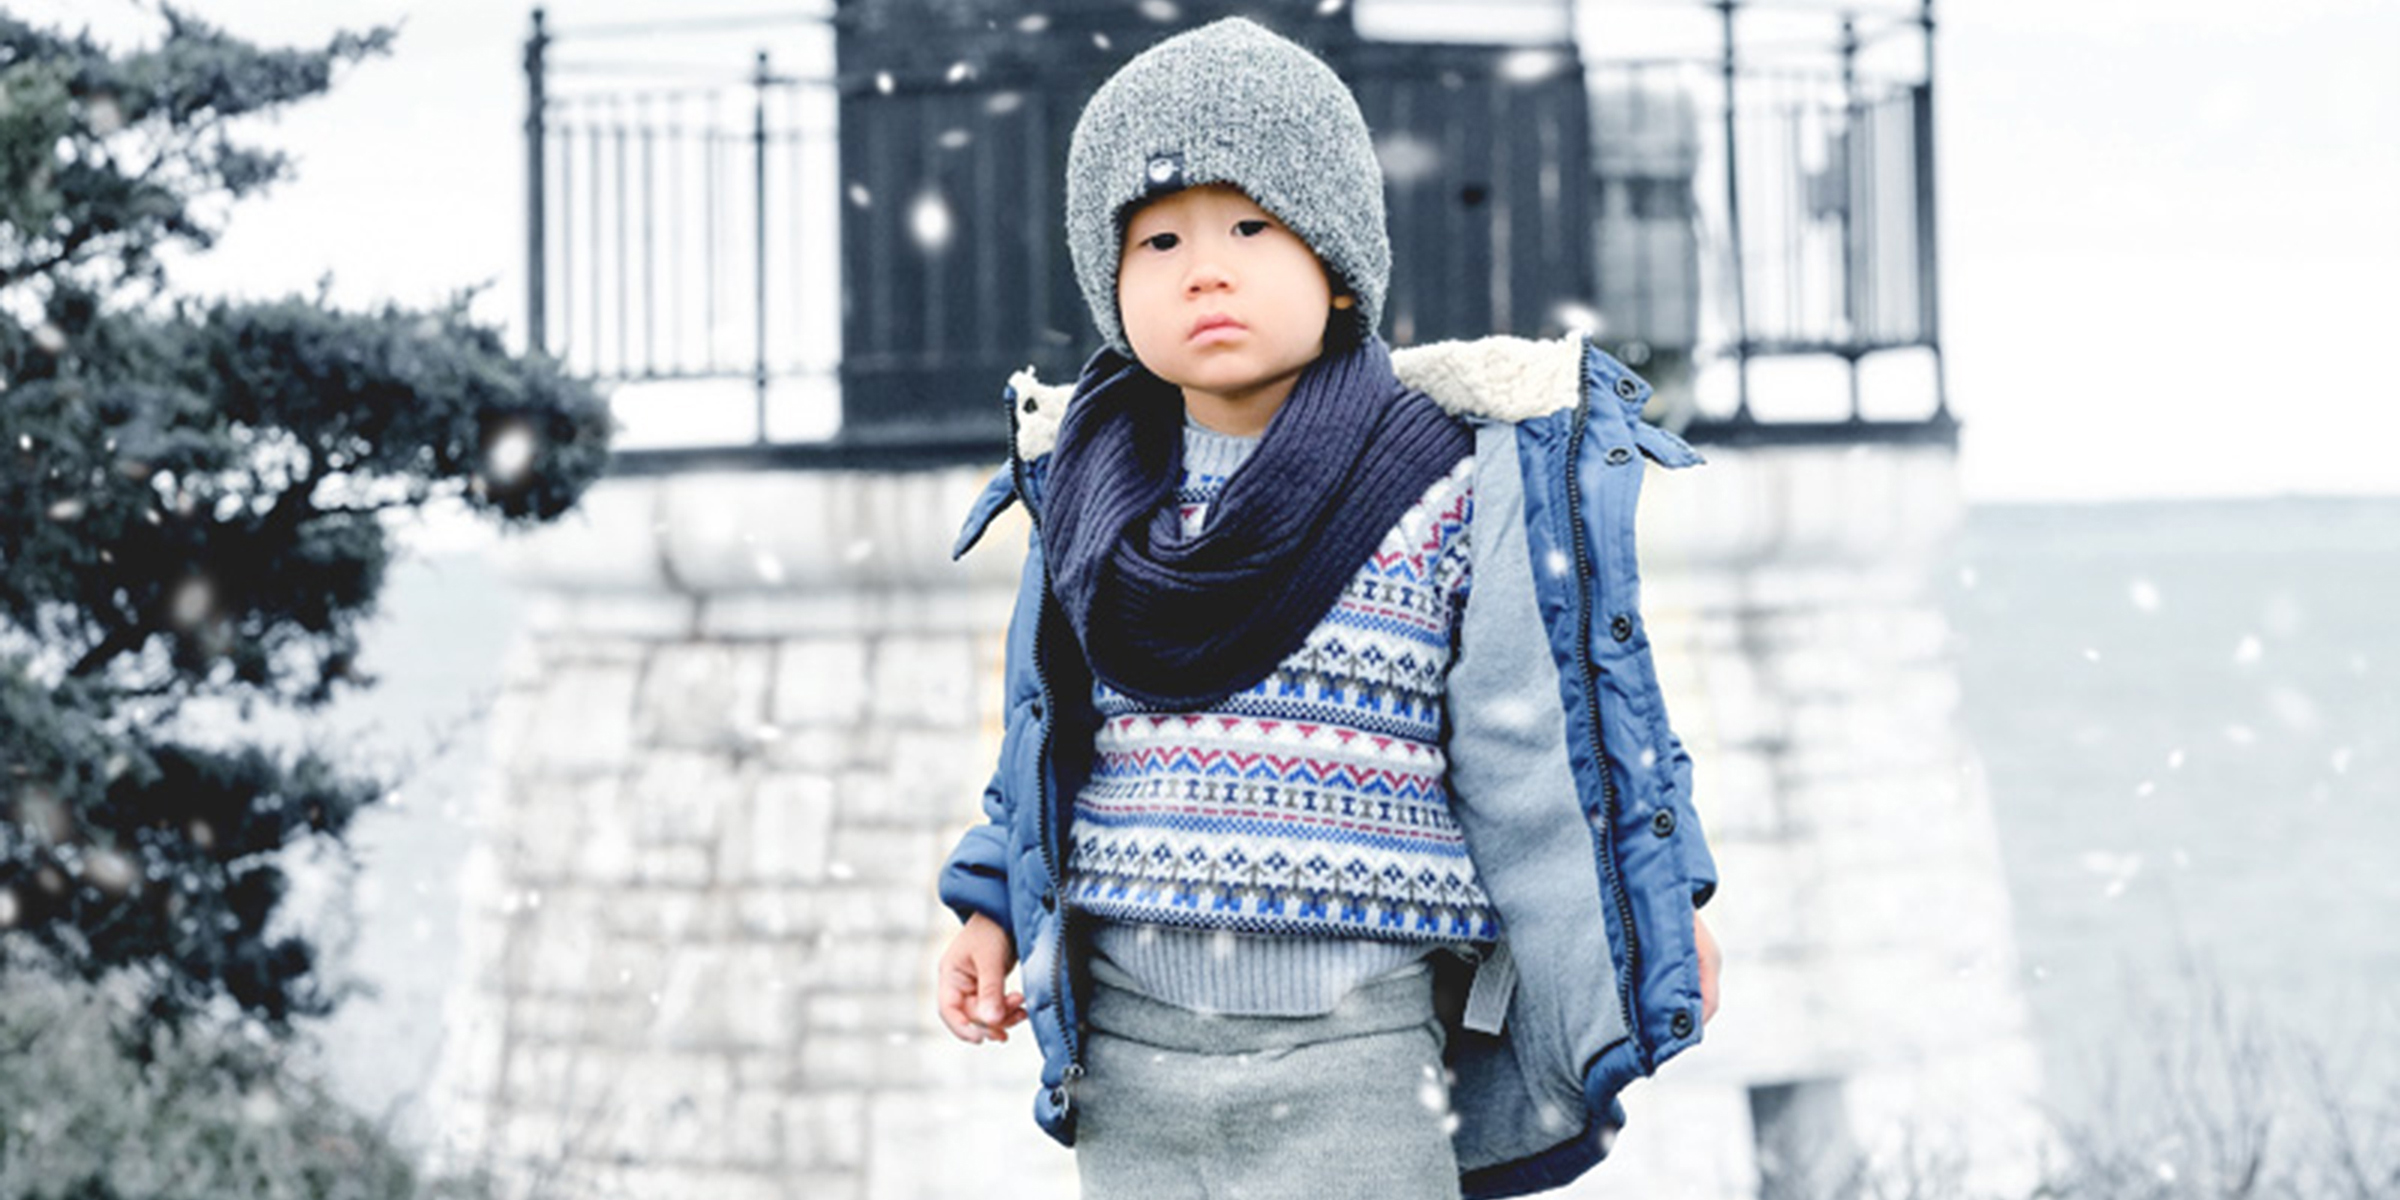 a0cd200af The best winter clothes for kids and toddlers 2019  coats